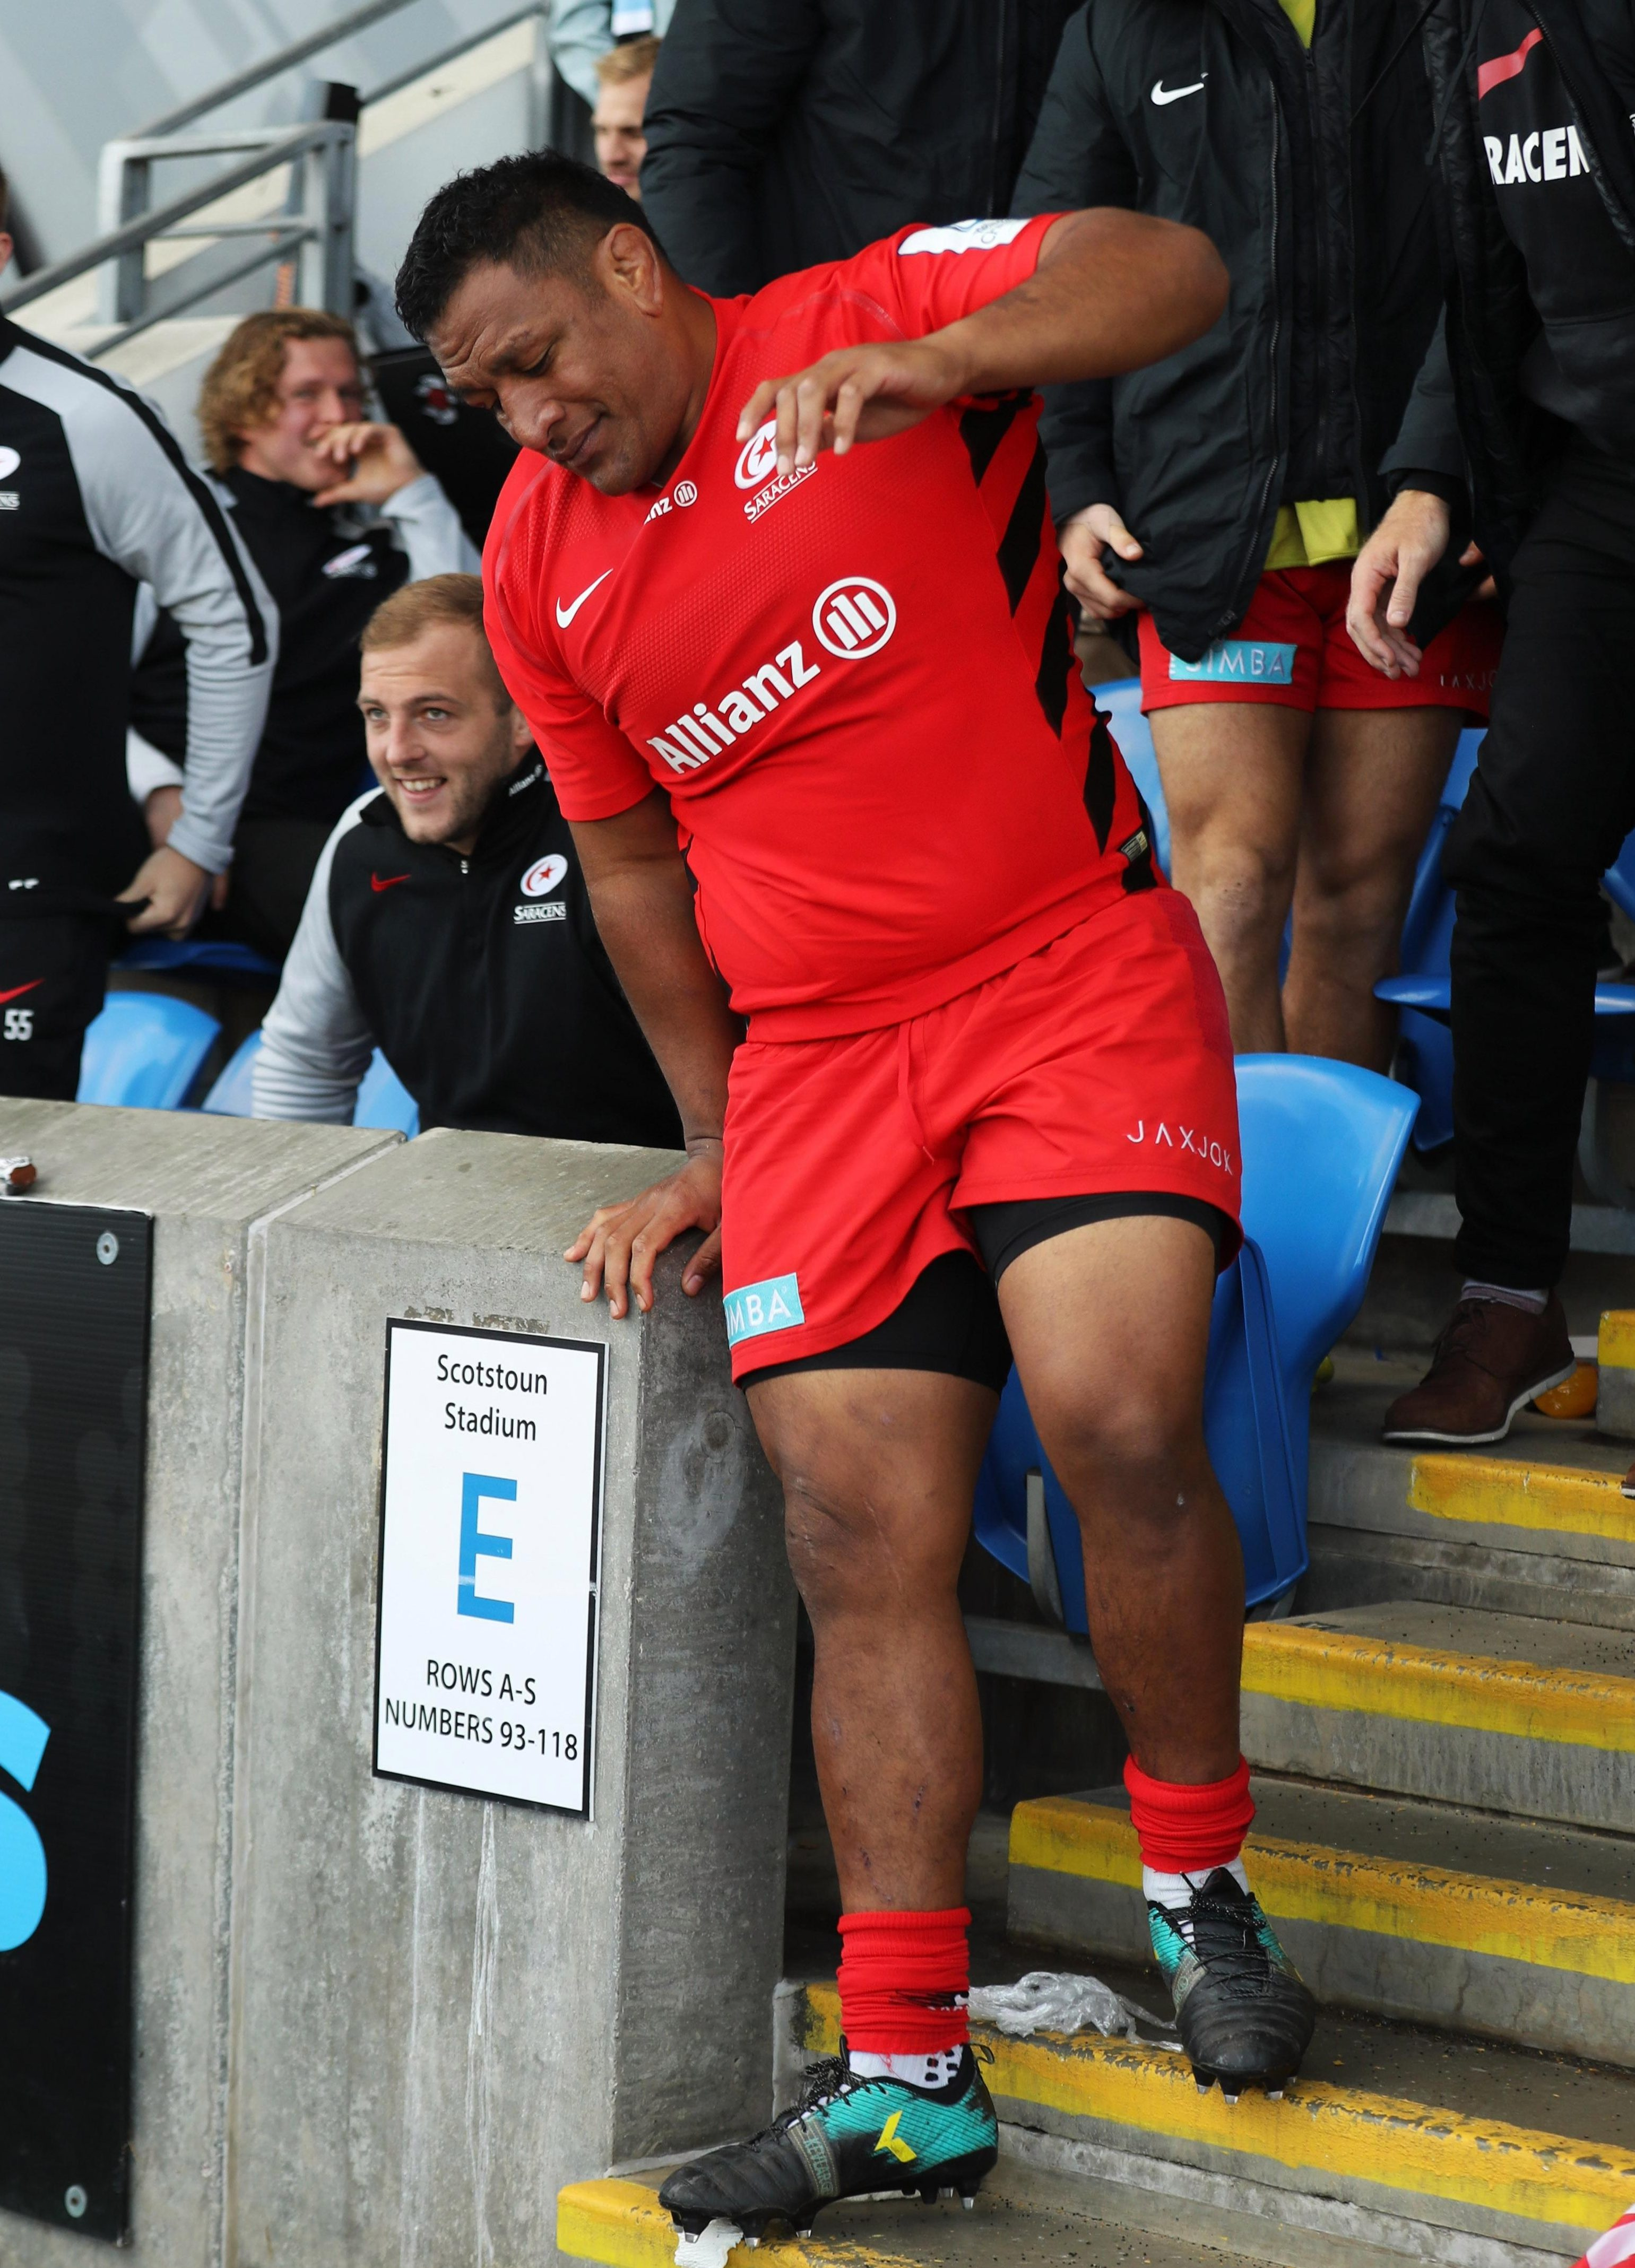 Mako Vunipola takes his place in the stands, another possible blow for England